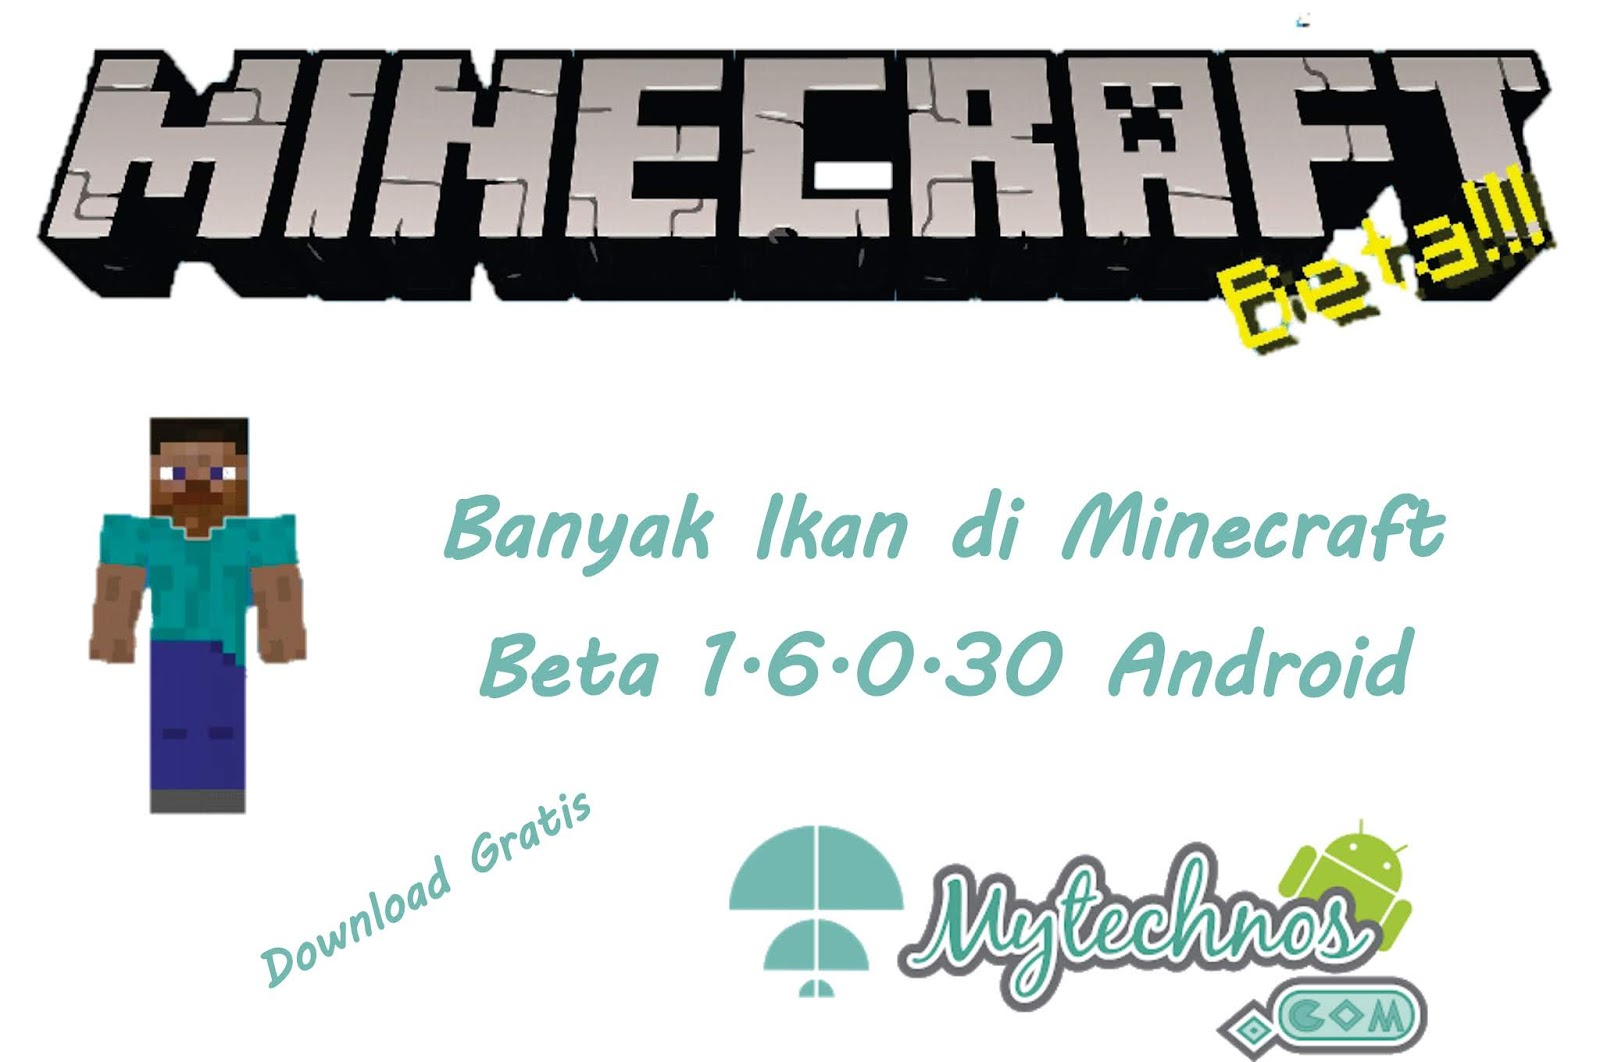 minecraft download apk 1.6 0.30